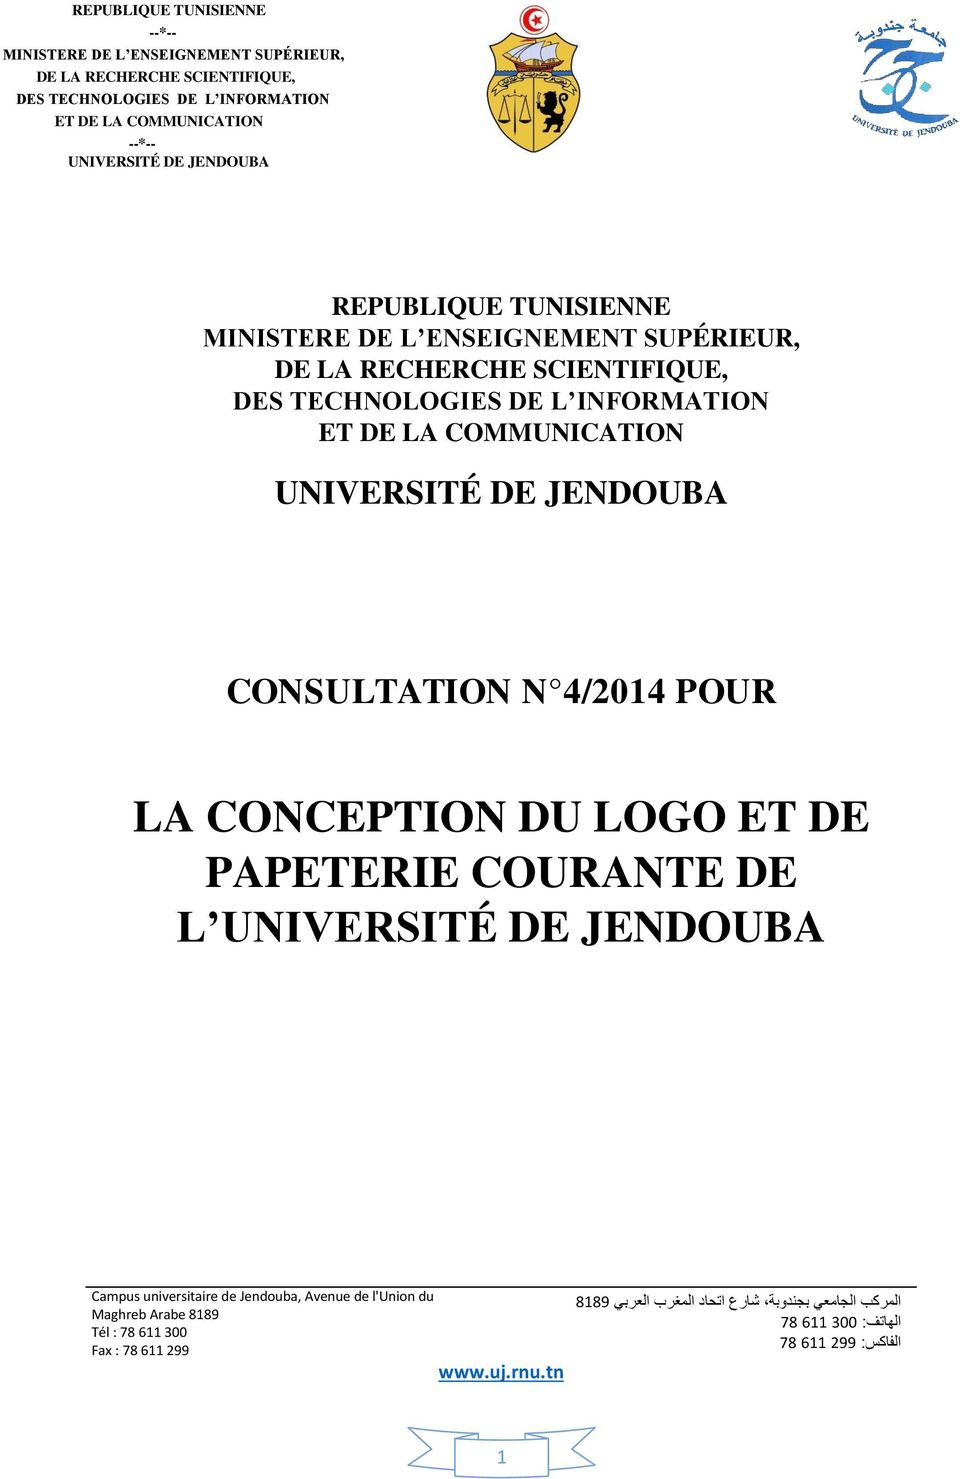 COMMUNICATION UNIVERSITÉ DE JENDOUBA CONSULTATION N 4/2014 POUR LA CONCEPTION DU LOGO ET DE PAPETERIE COURANTE DE L UNIVERSITÉ DE JENDOUBA Campus universitaire de